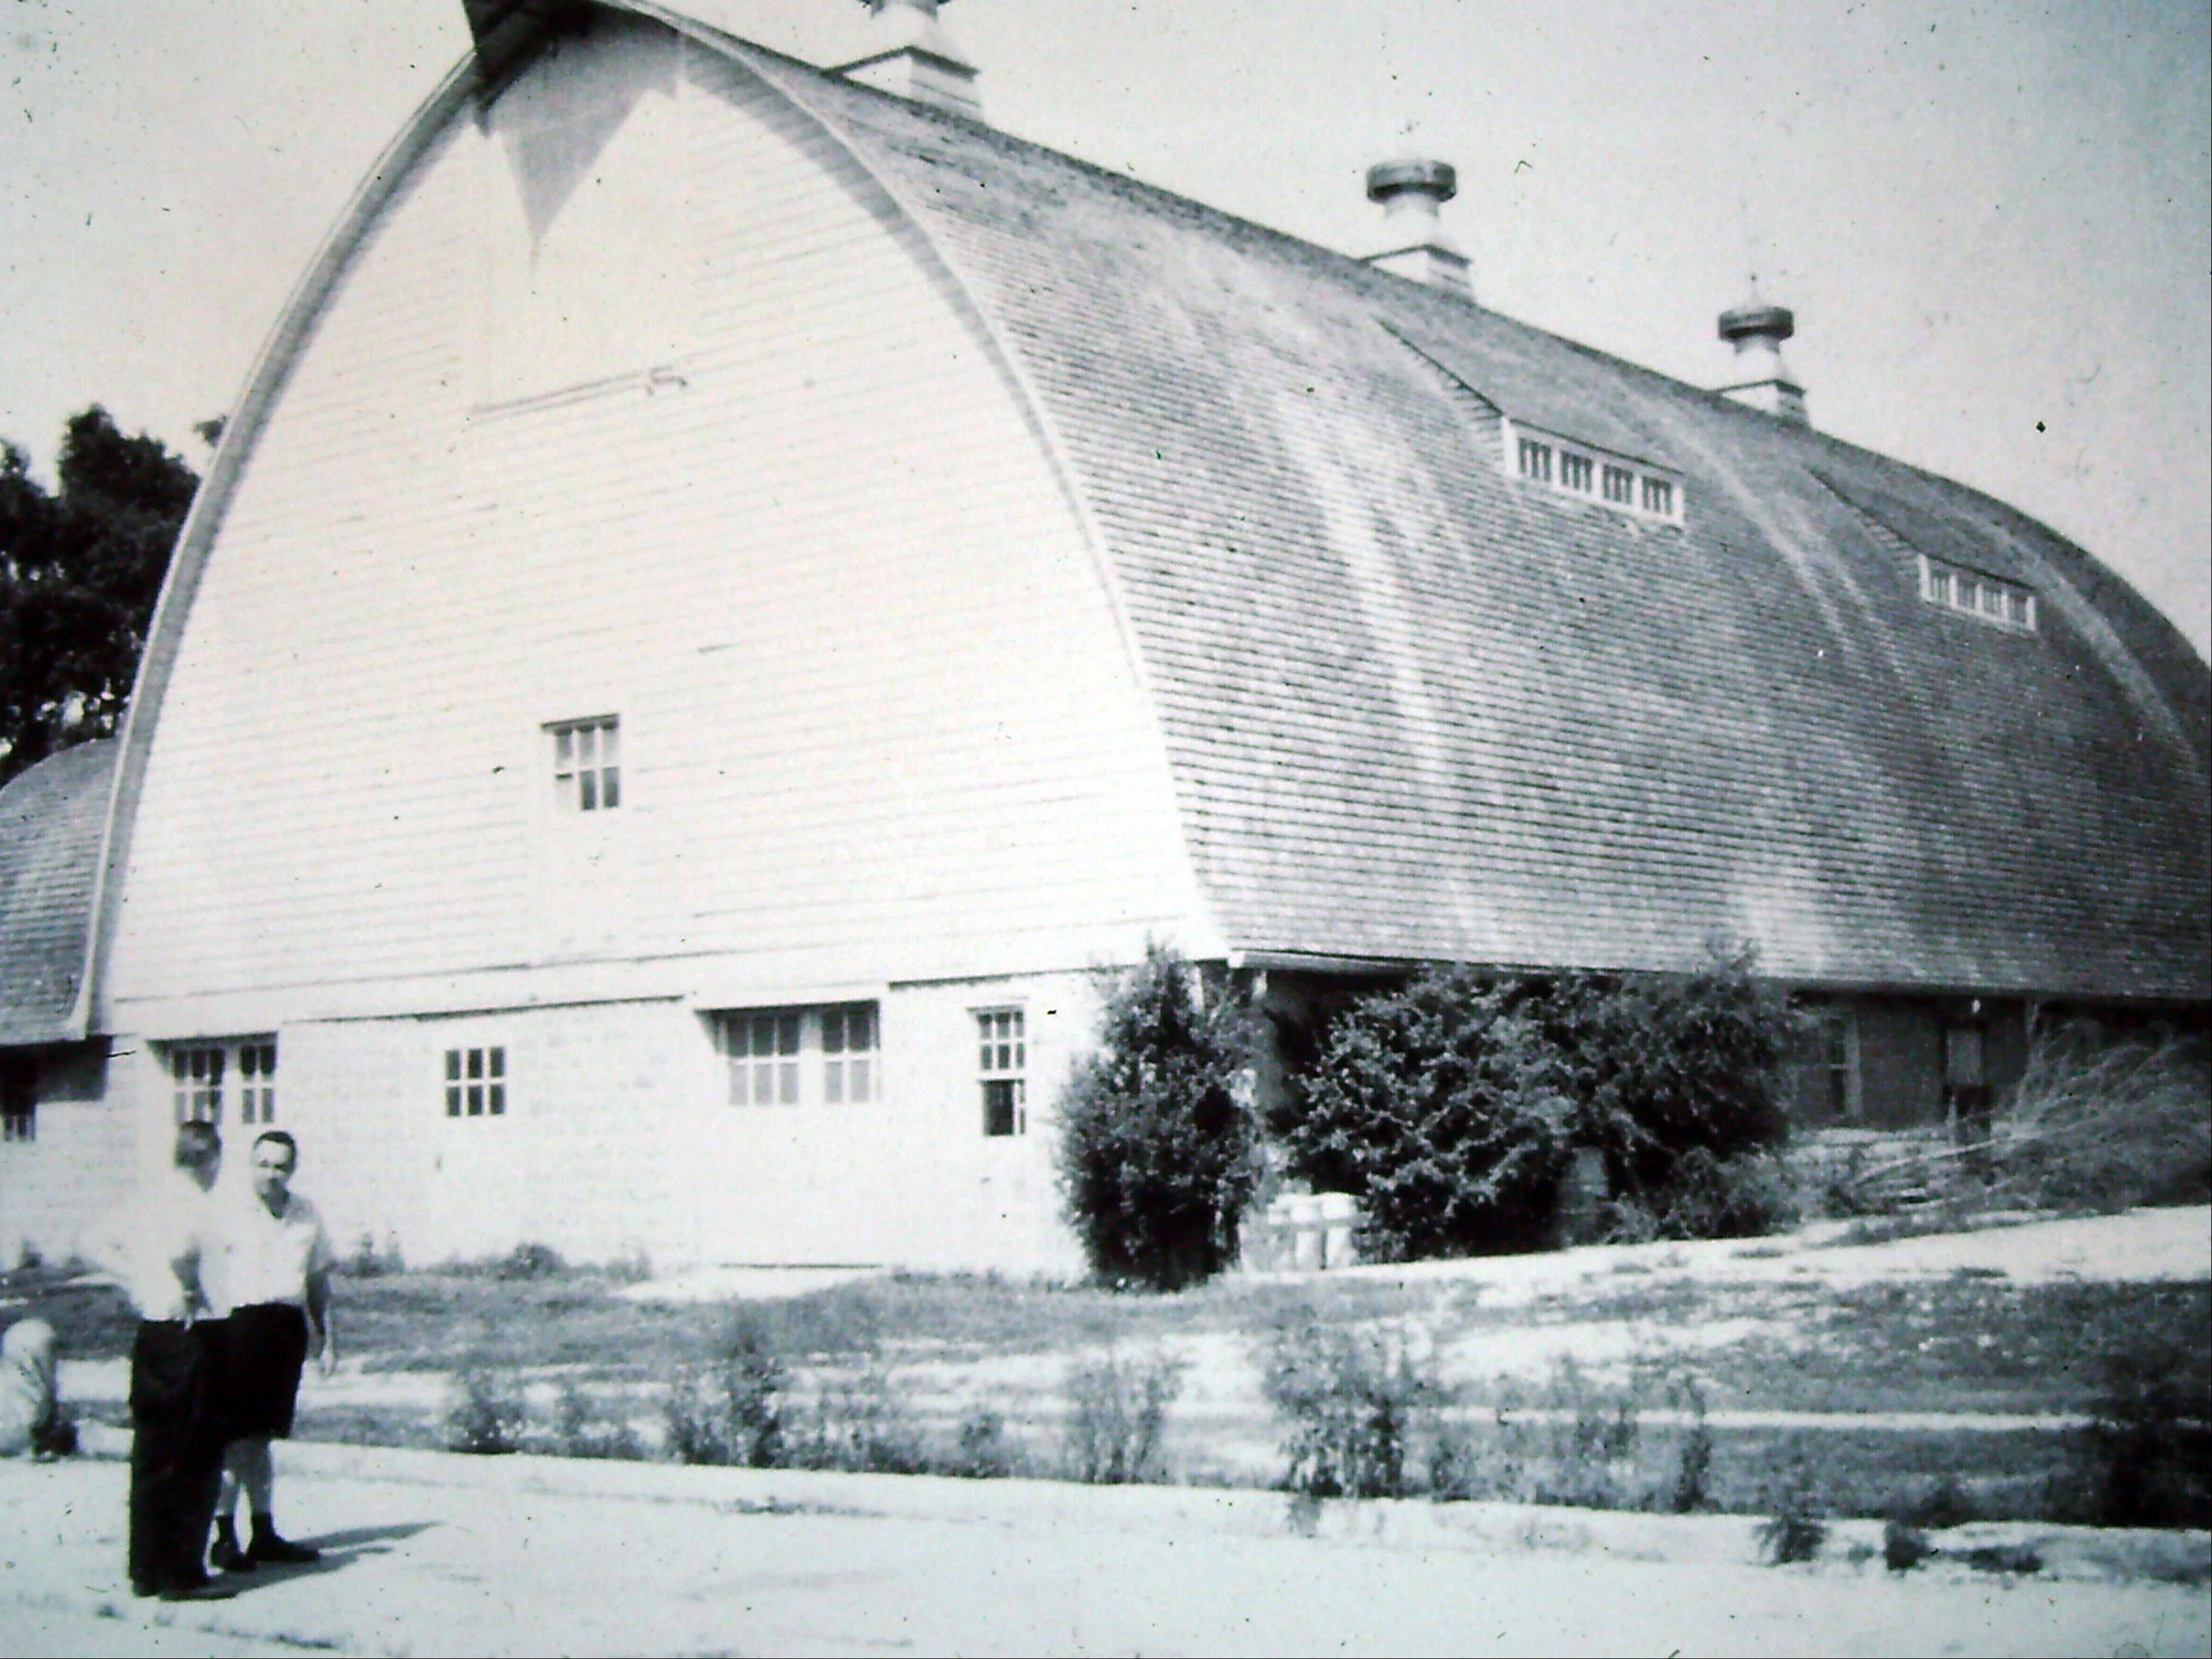 Historic photo of where the current pet shop is located at Lambs Farm near Libertyville.